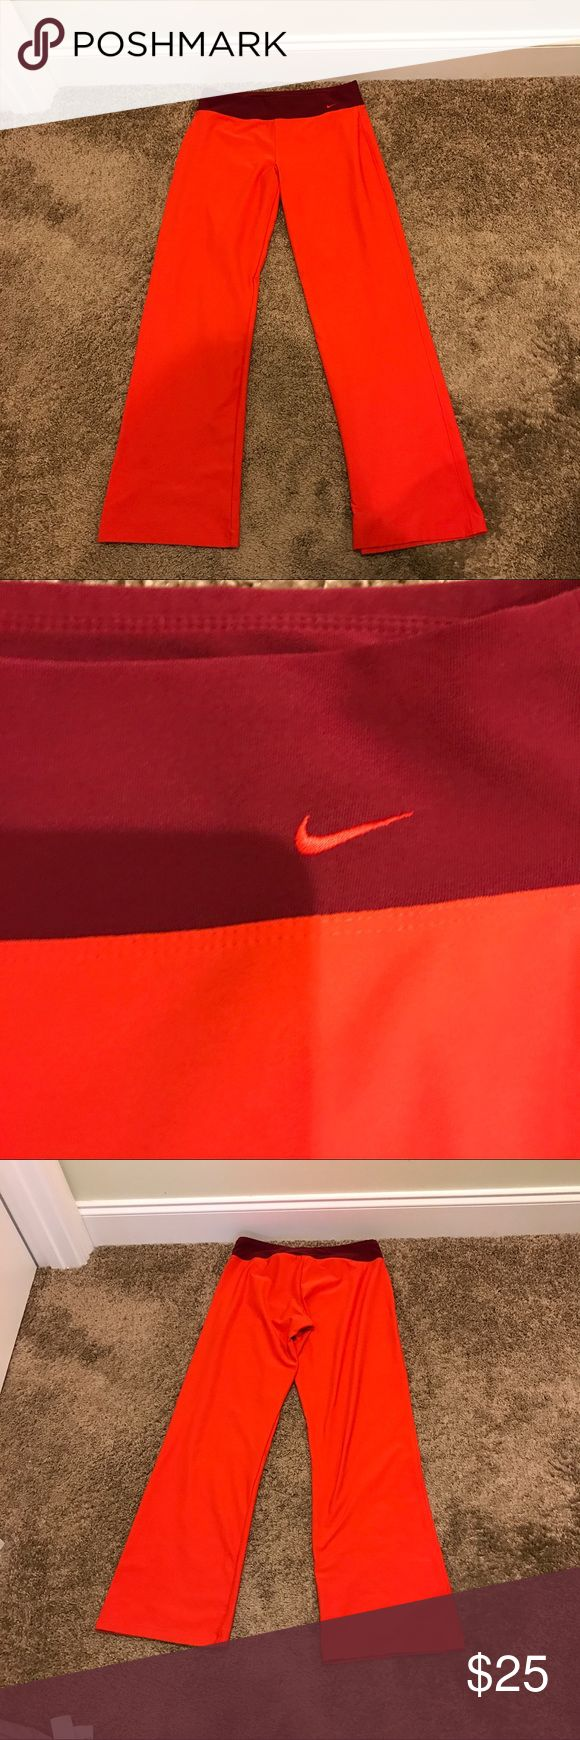 Nike Dri-Fit Workout Athletic Gym Yoga Pants M Orange color on these excellent used condition Women's Nike Gym Workout Pants size Medium (8-10) Nike Pants Track Pants & Joggers